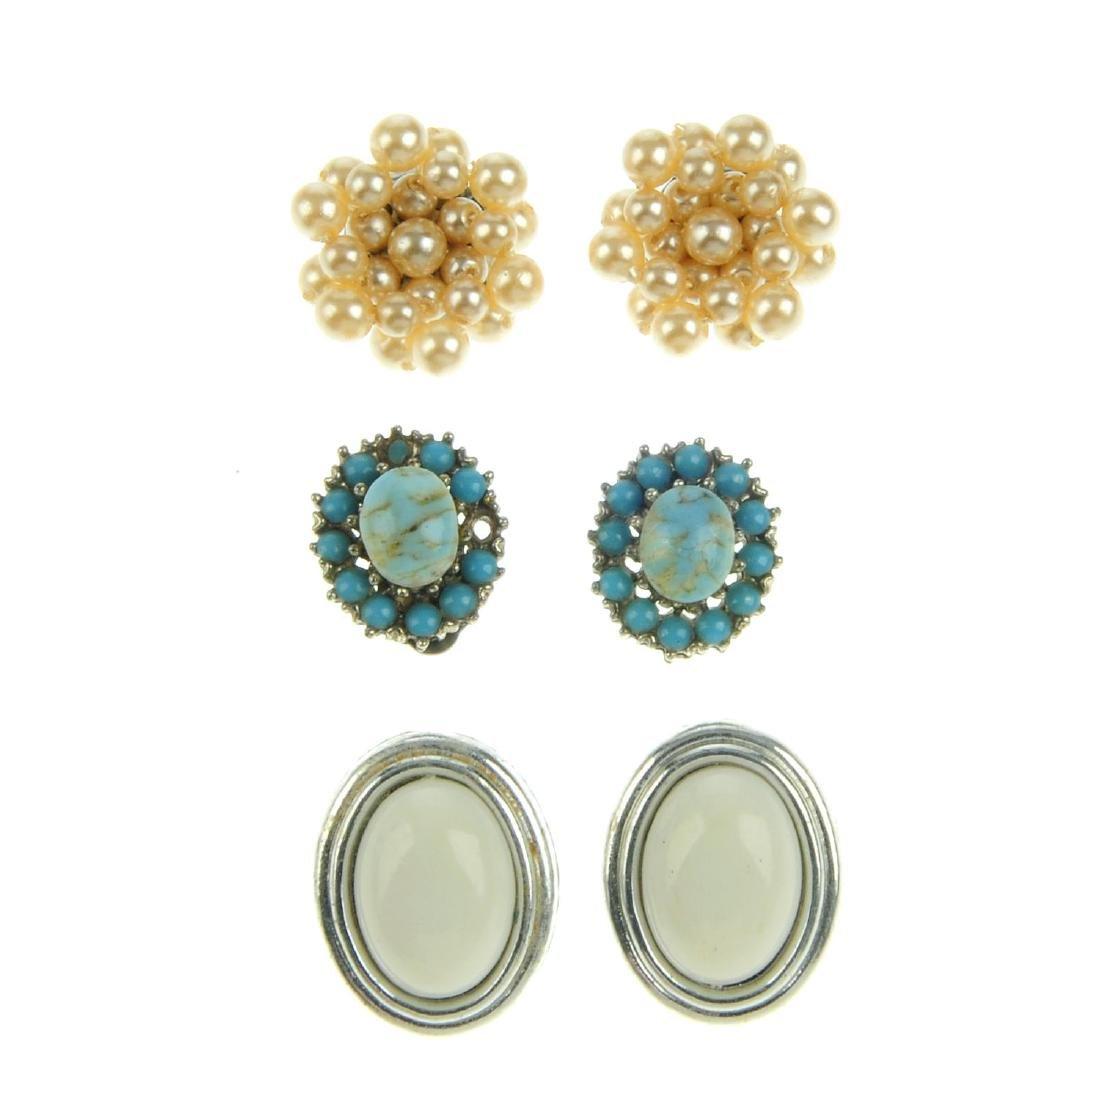 A quantity of costume jewellery clip earrings. To